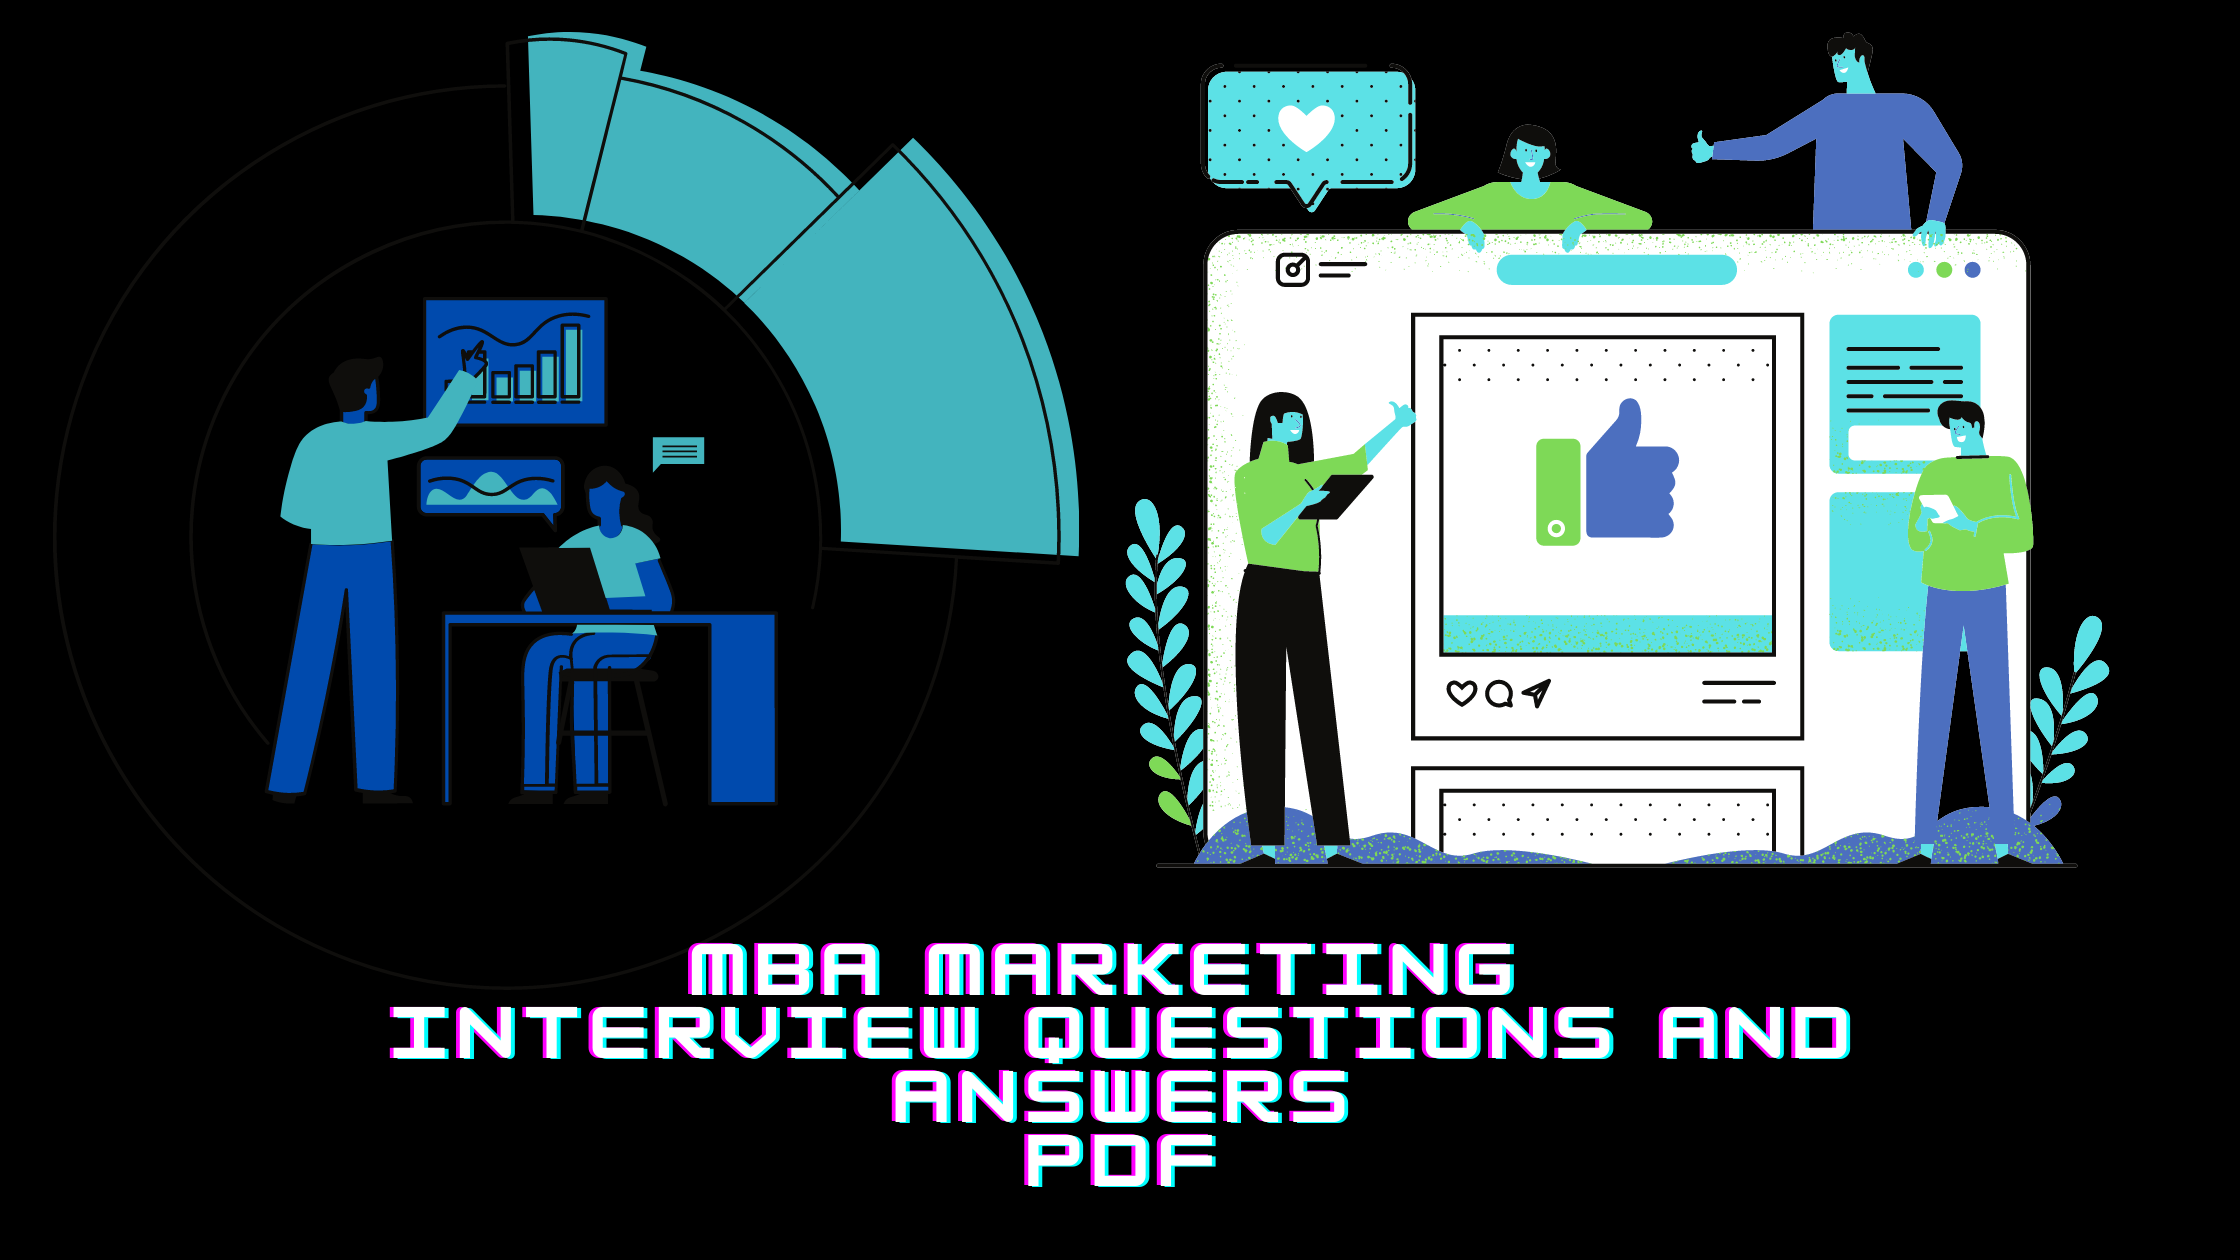 MBA Marketing Interview Questions and Answers PDF